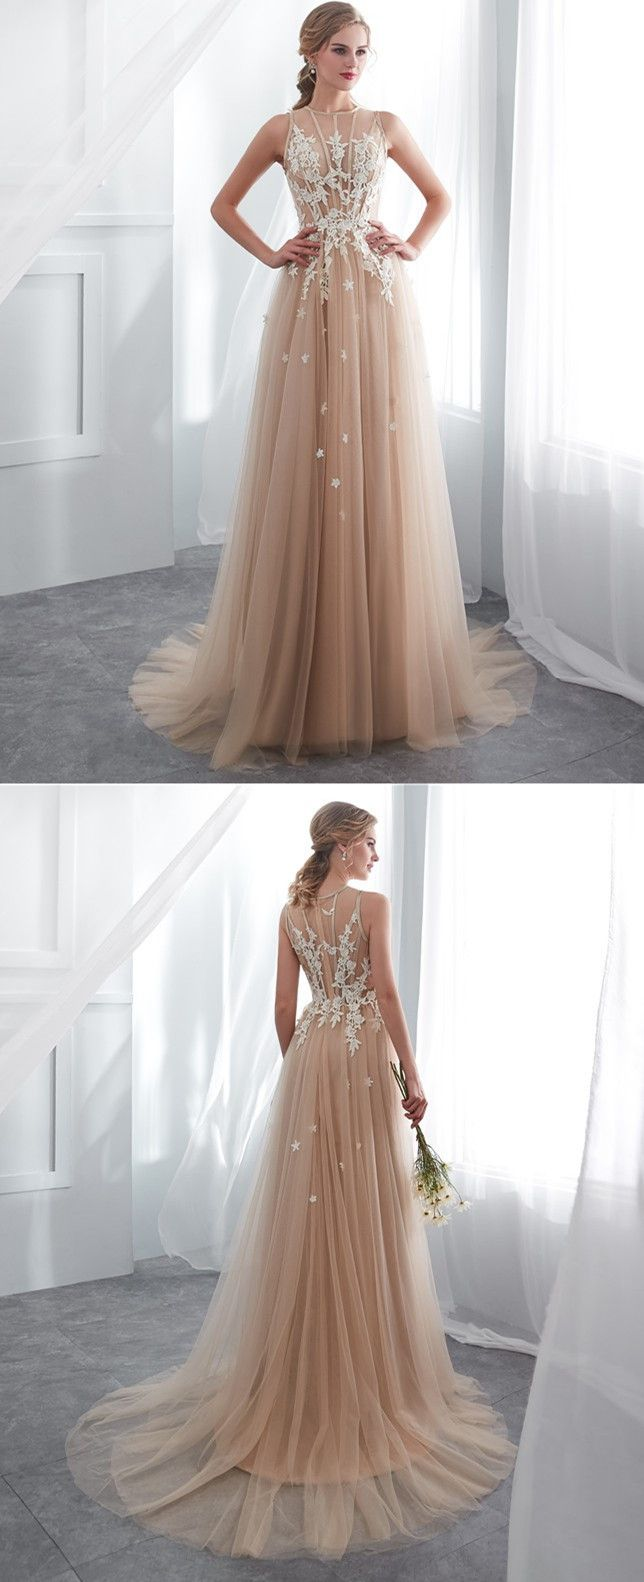 Gorgeous long champagne prom dress with white lace homecoming